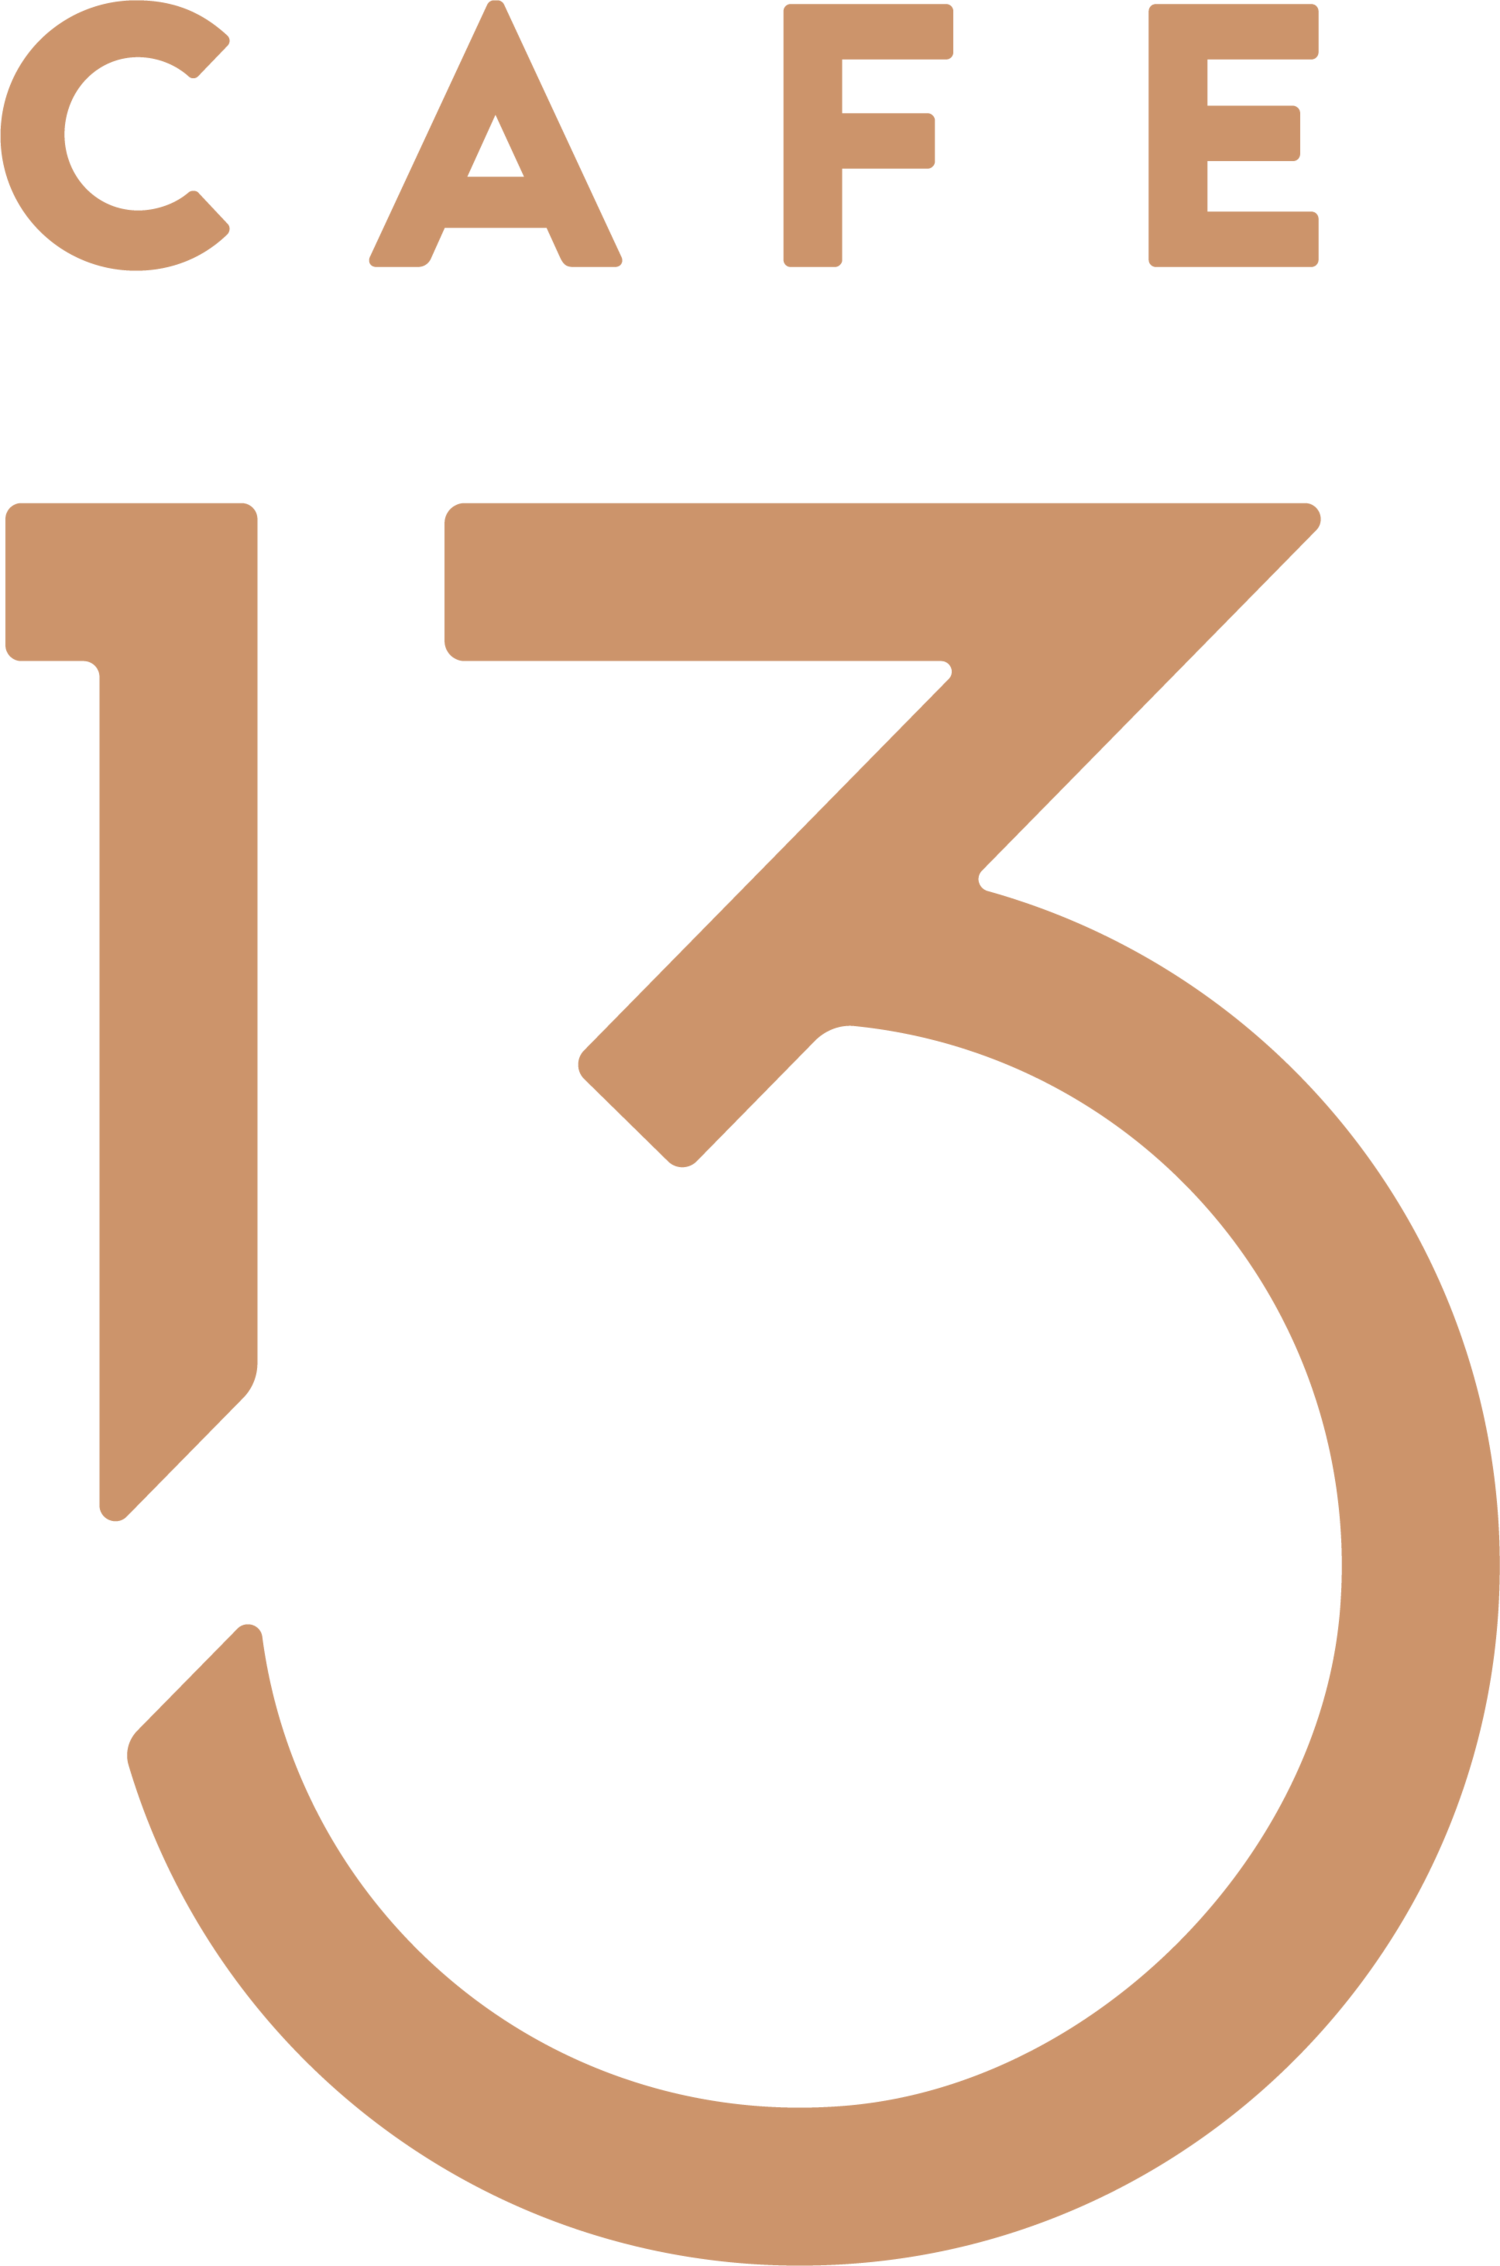 Thanks to Cafe 13 for providing coffee to our festival artists during the festival and hosing our Artists Reception on Saturday night!